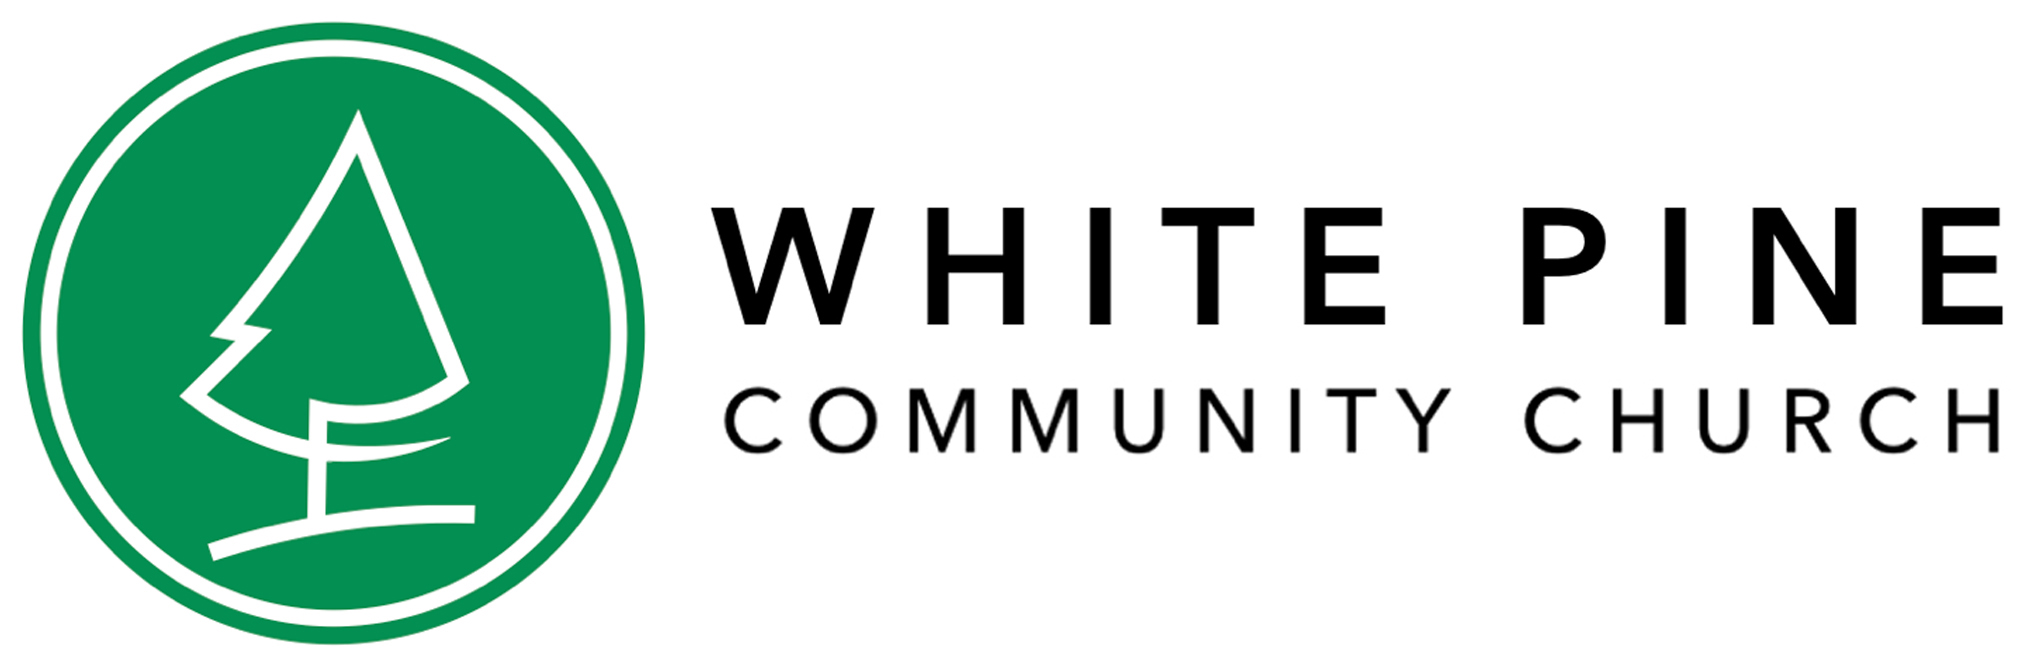 White Pine Community Church